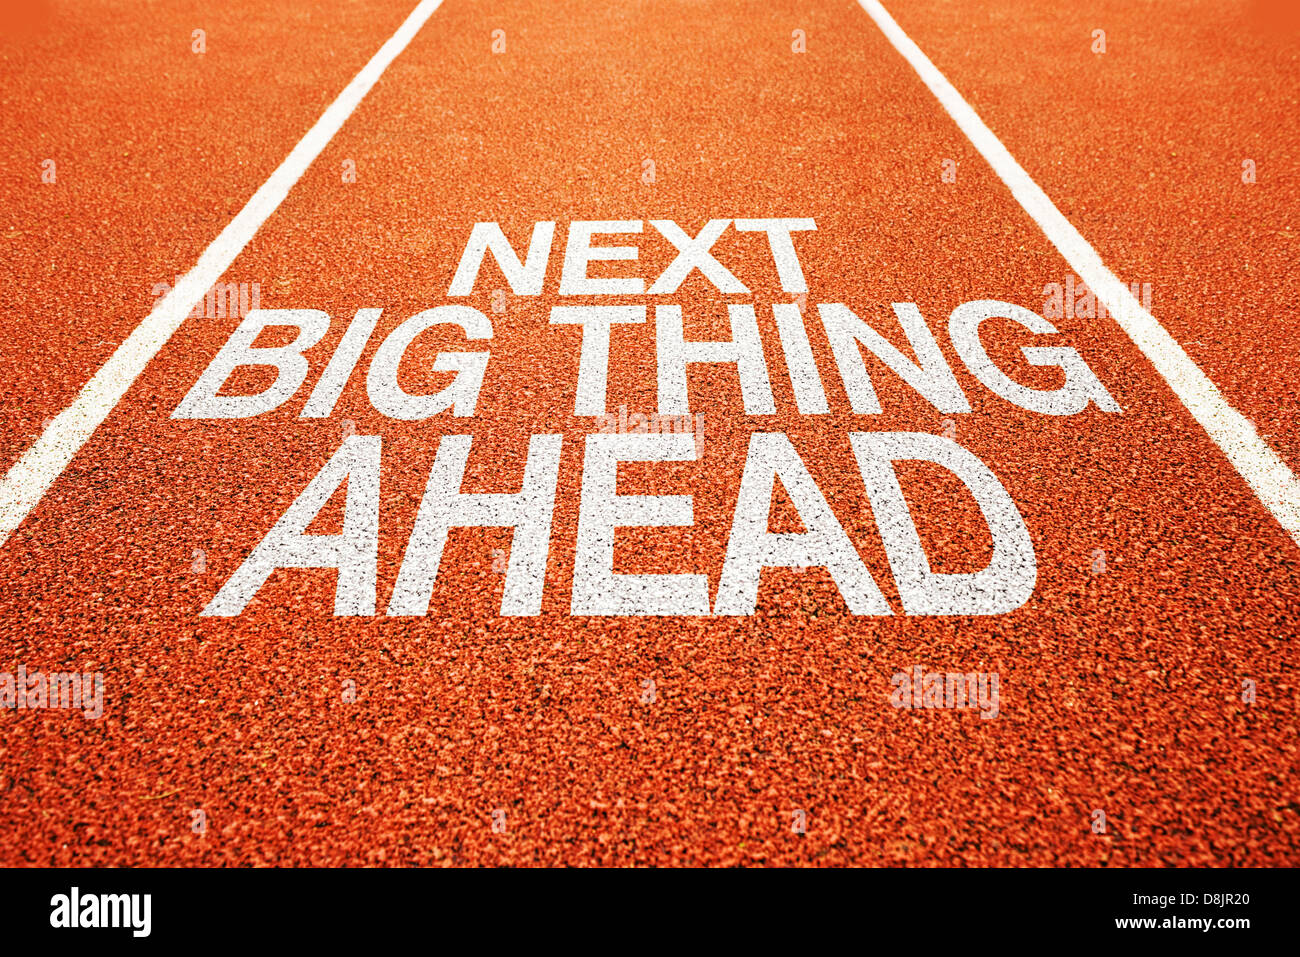 Next big thing ahead on athletics all weather running track - Stock Image